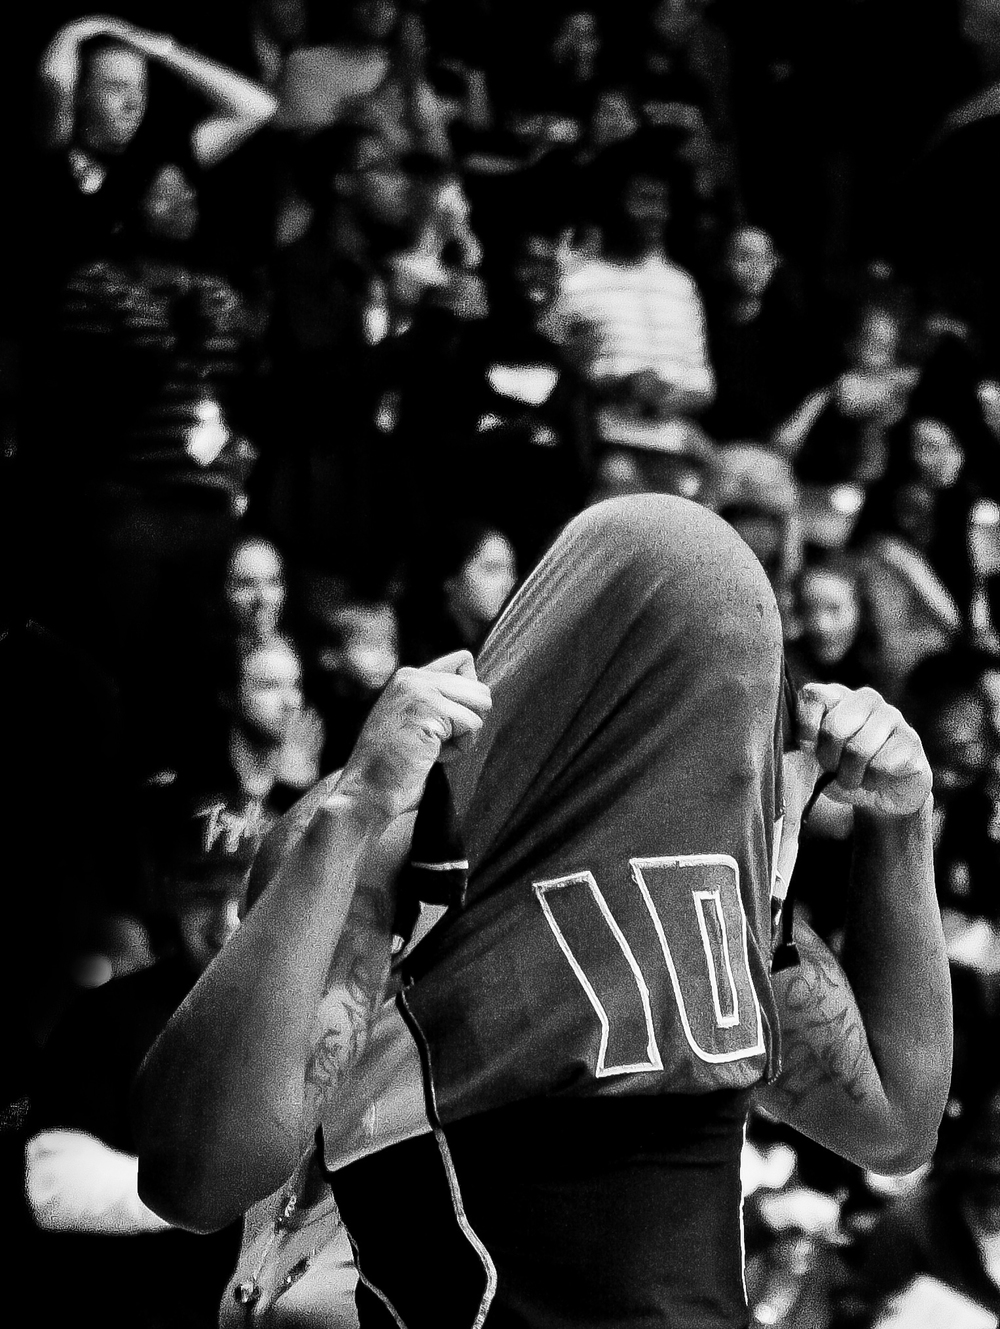 Towson University guard Will Adams pulls his jersey over his head in  shame after a tough loss to James Madison University on Feb. 11, 2012 in  Baltimore, Md. From 2011 to 2012 Towson set the NCAA record with 41  consecutive loses.